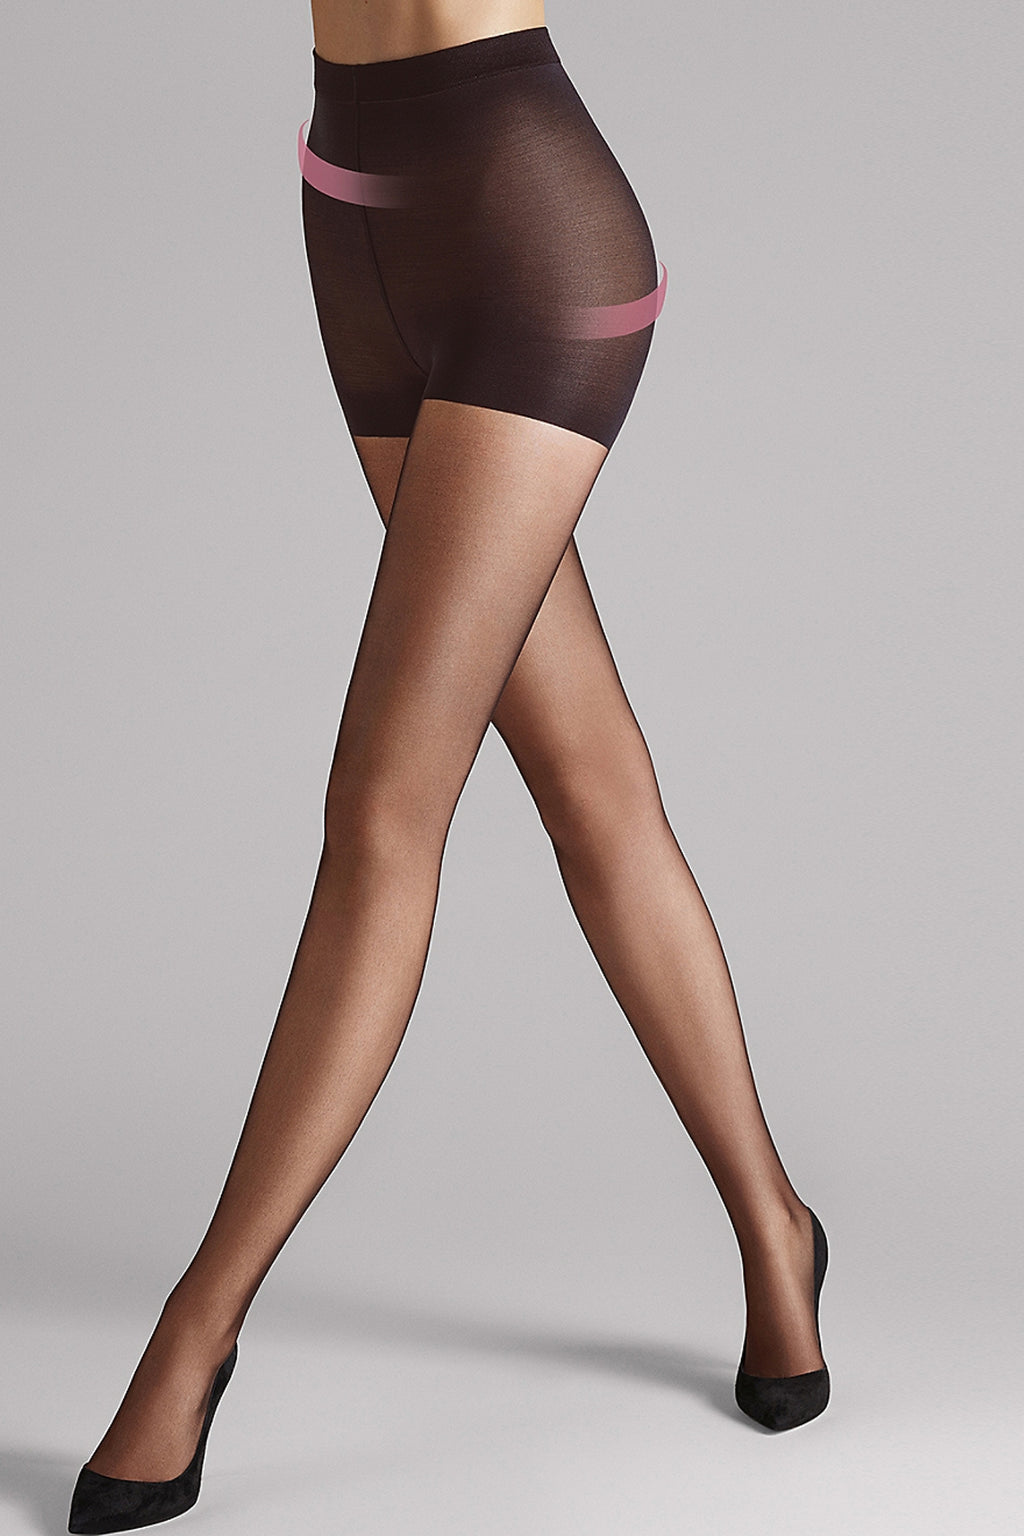 Wolford Individual 10 Control Top Tights Light Support